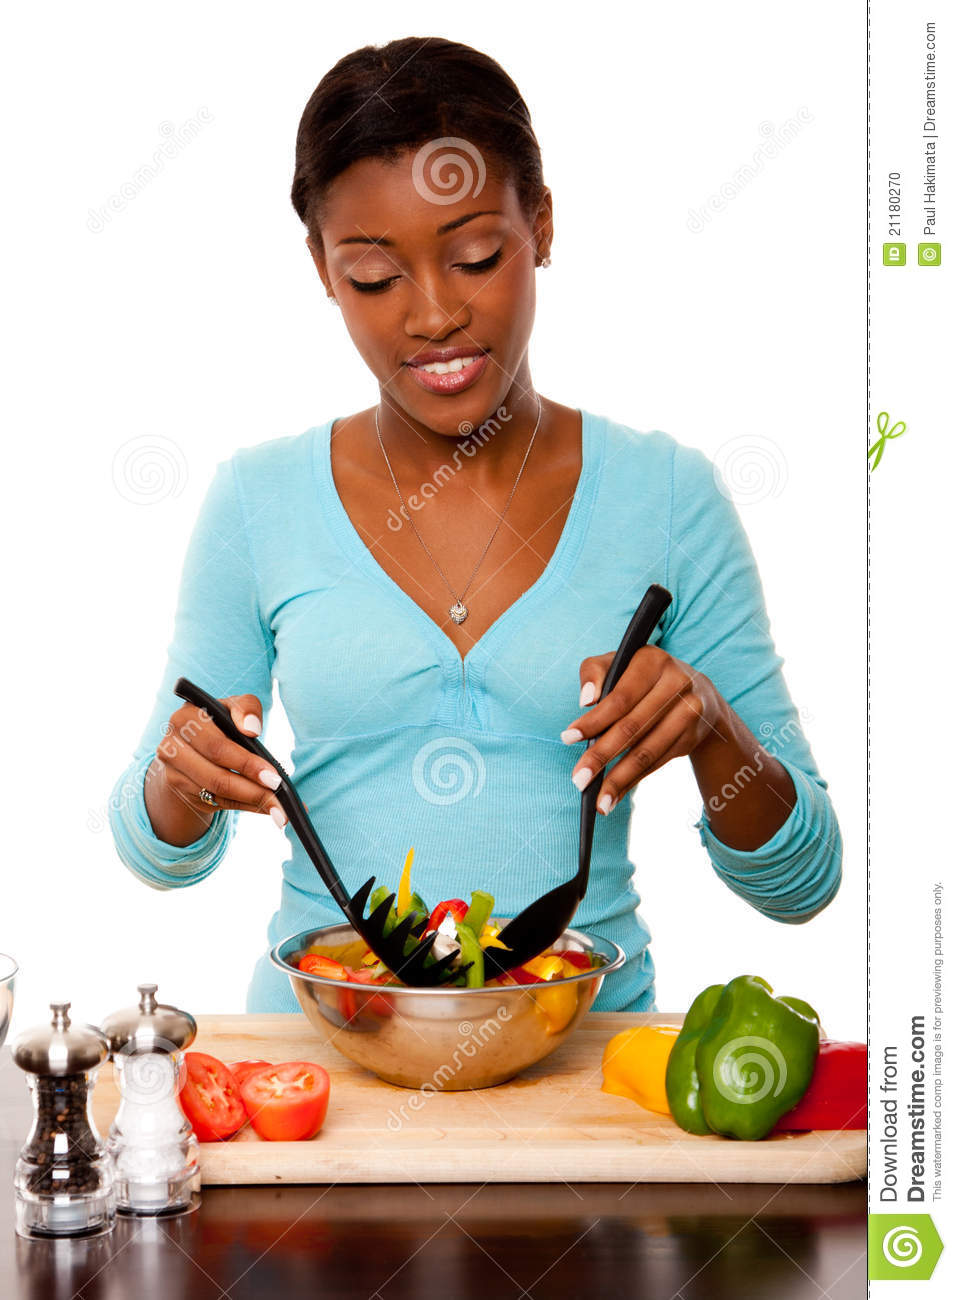 Health Conscious - Tossing Salad